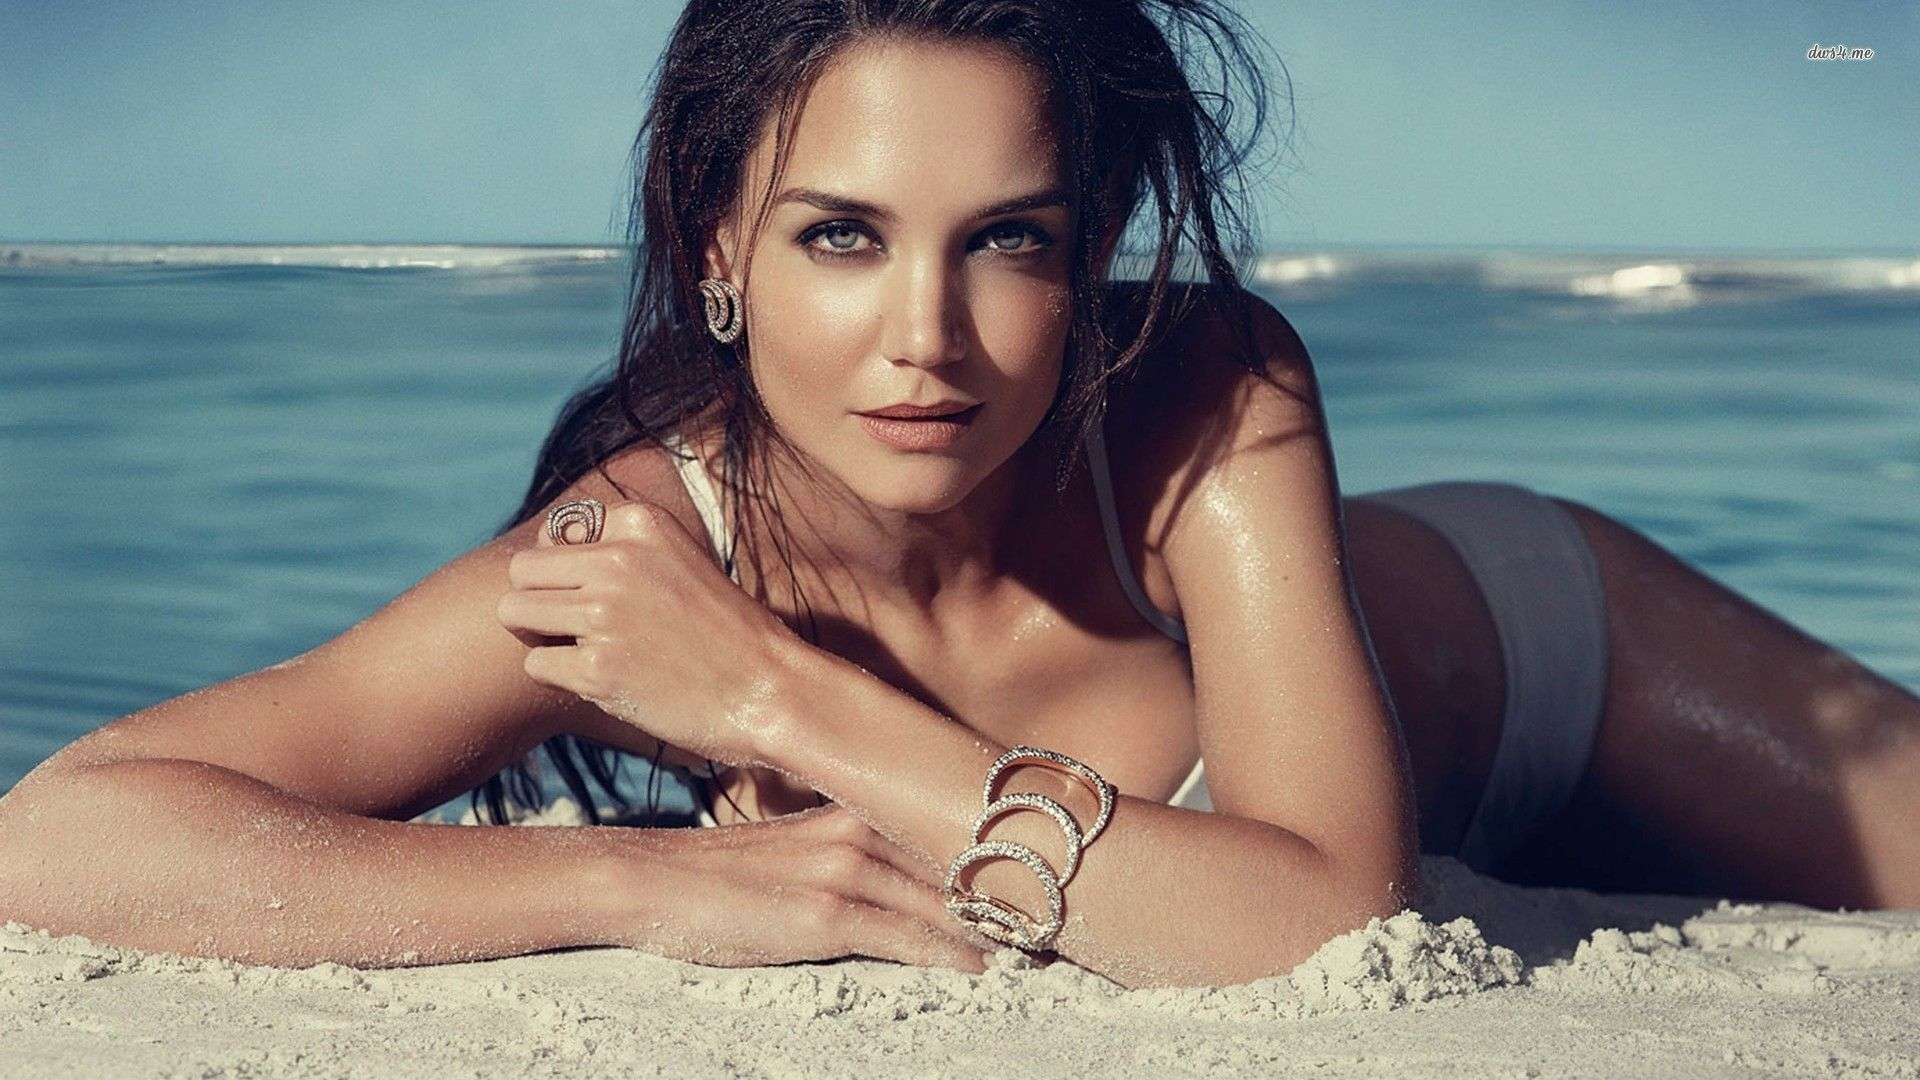 1920x1080 Katie Holmes Wallpapers and Background Images - stmed.net